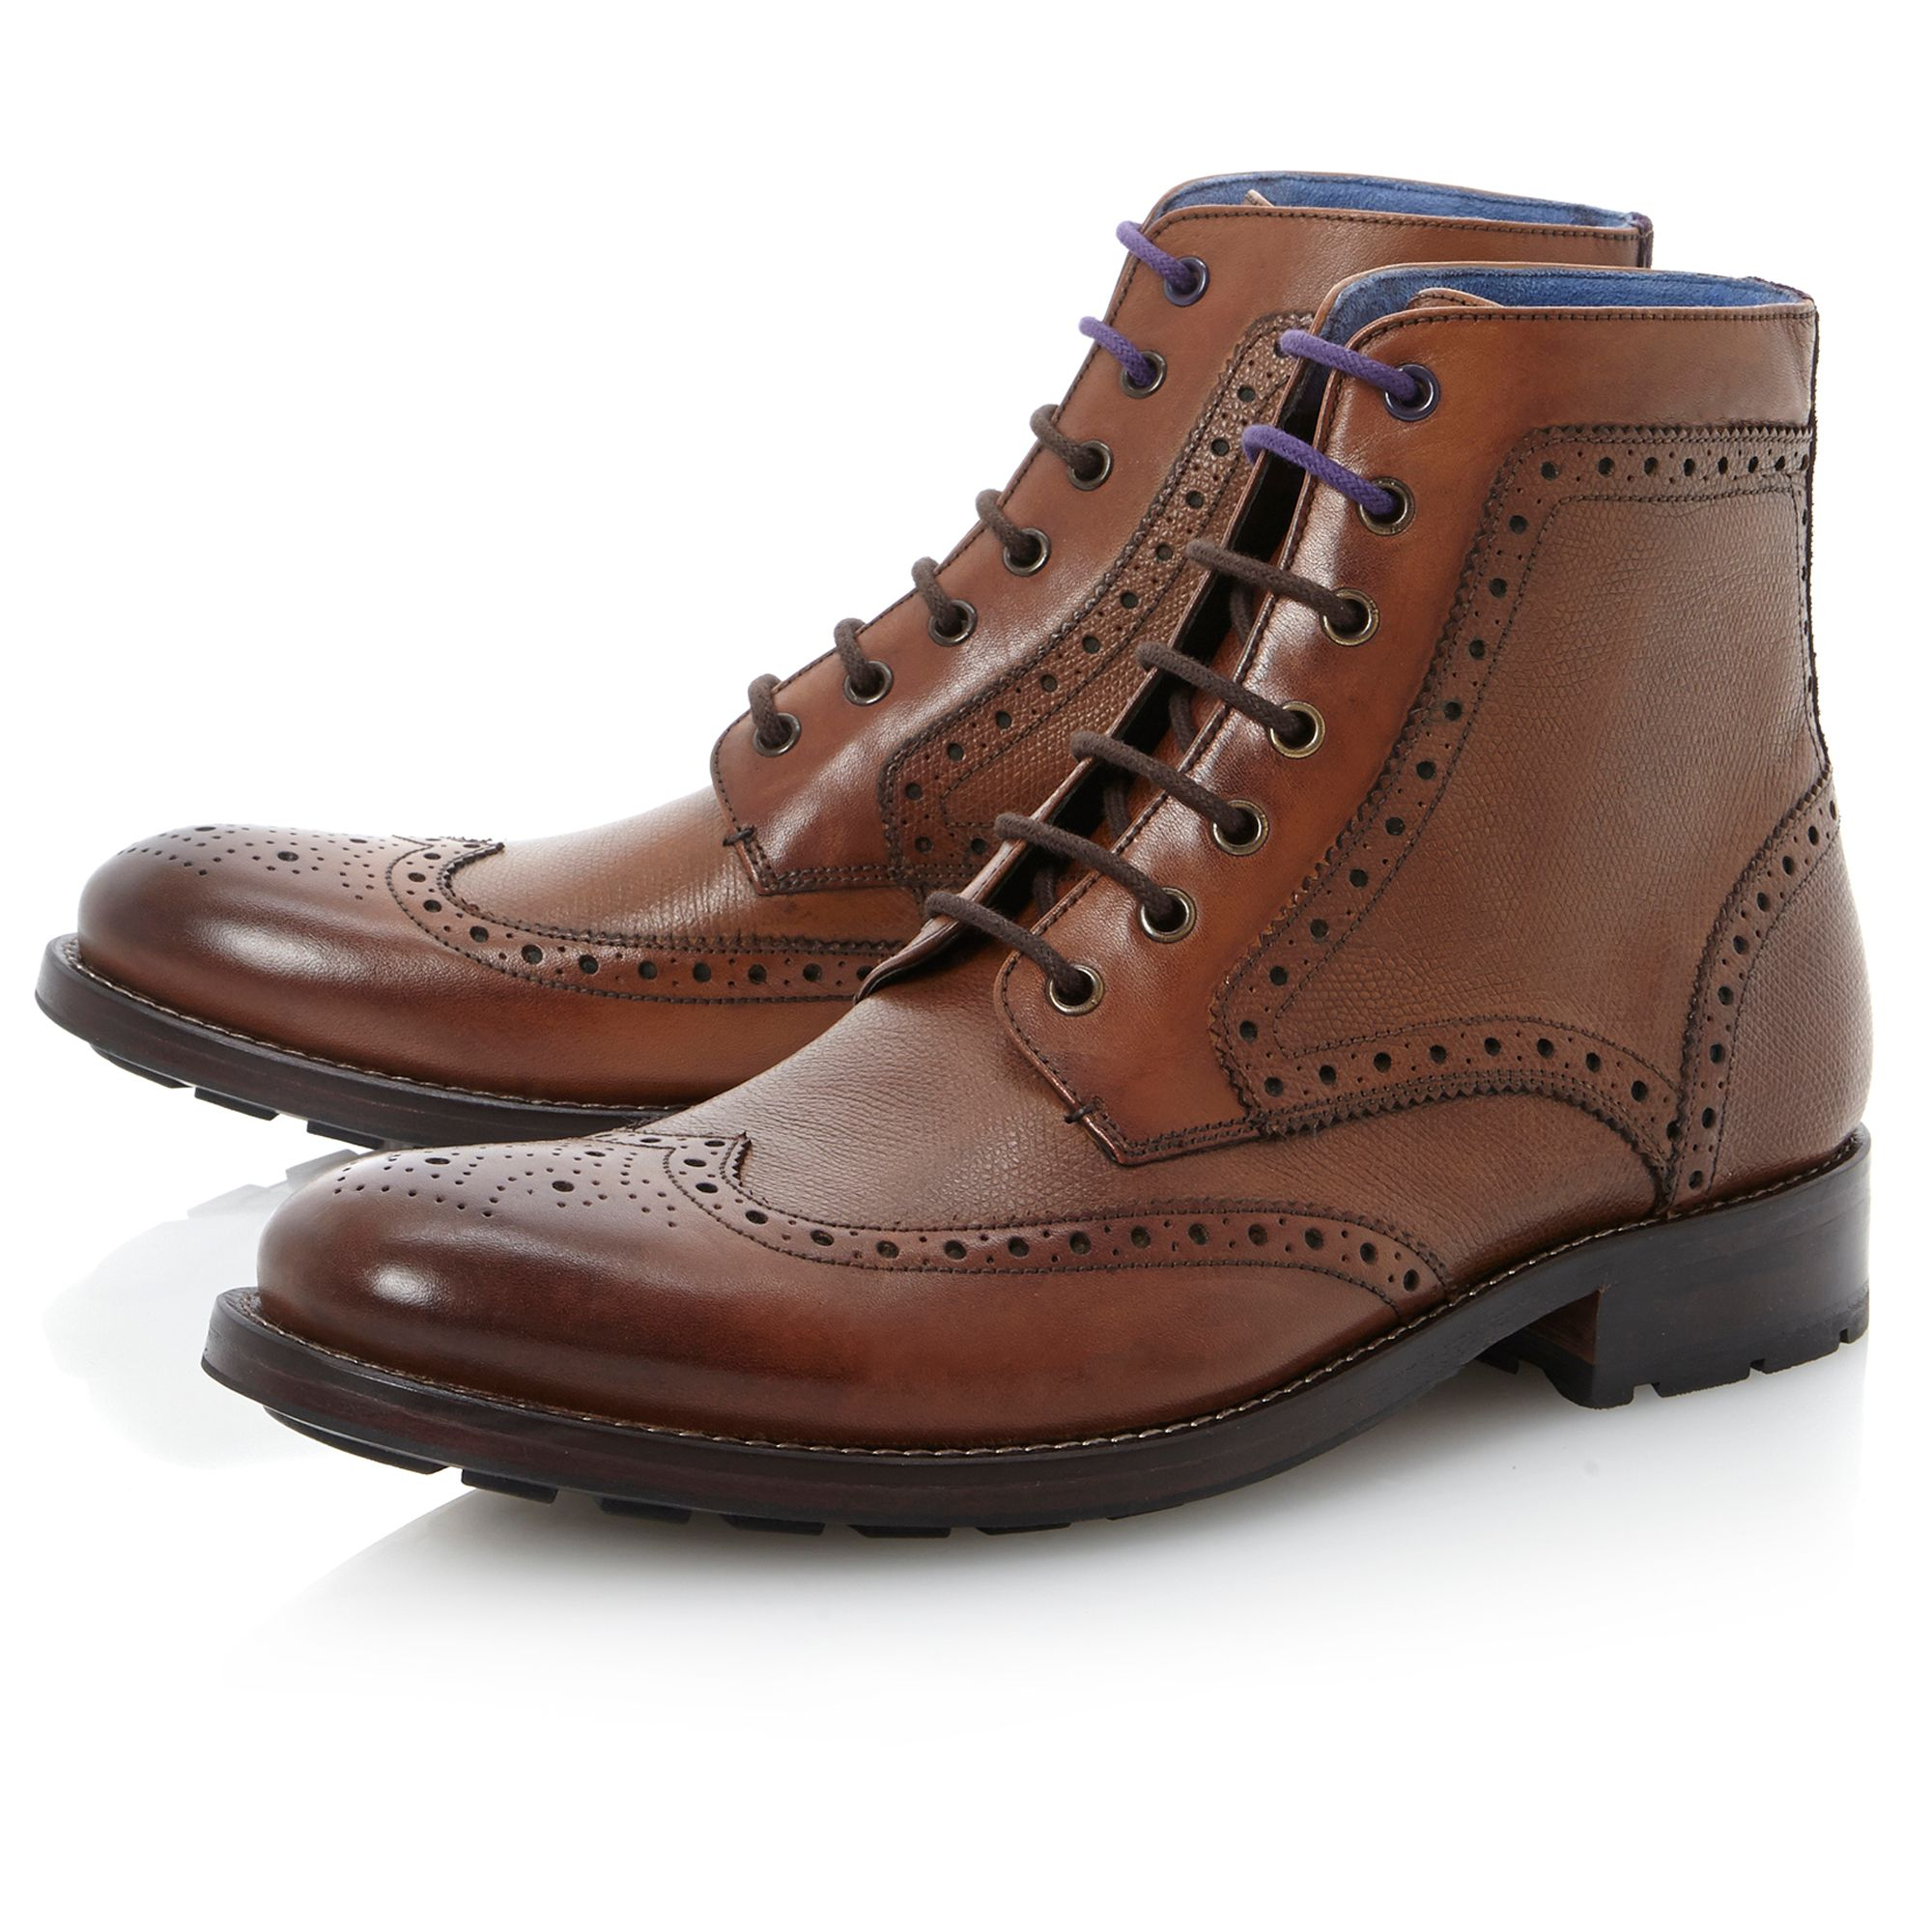 Sealls combination brogue boot